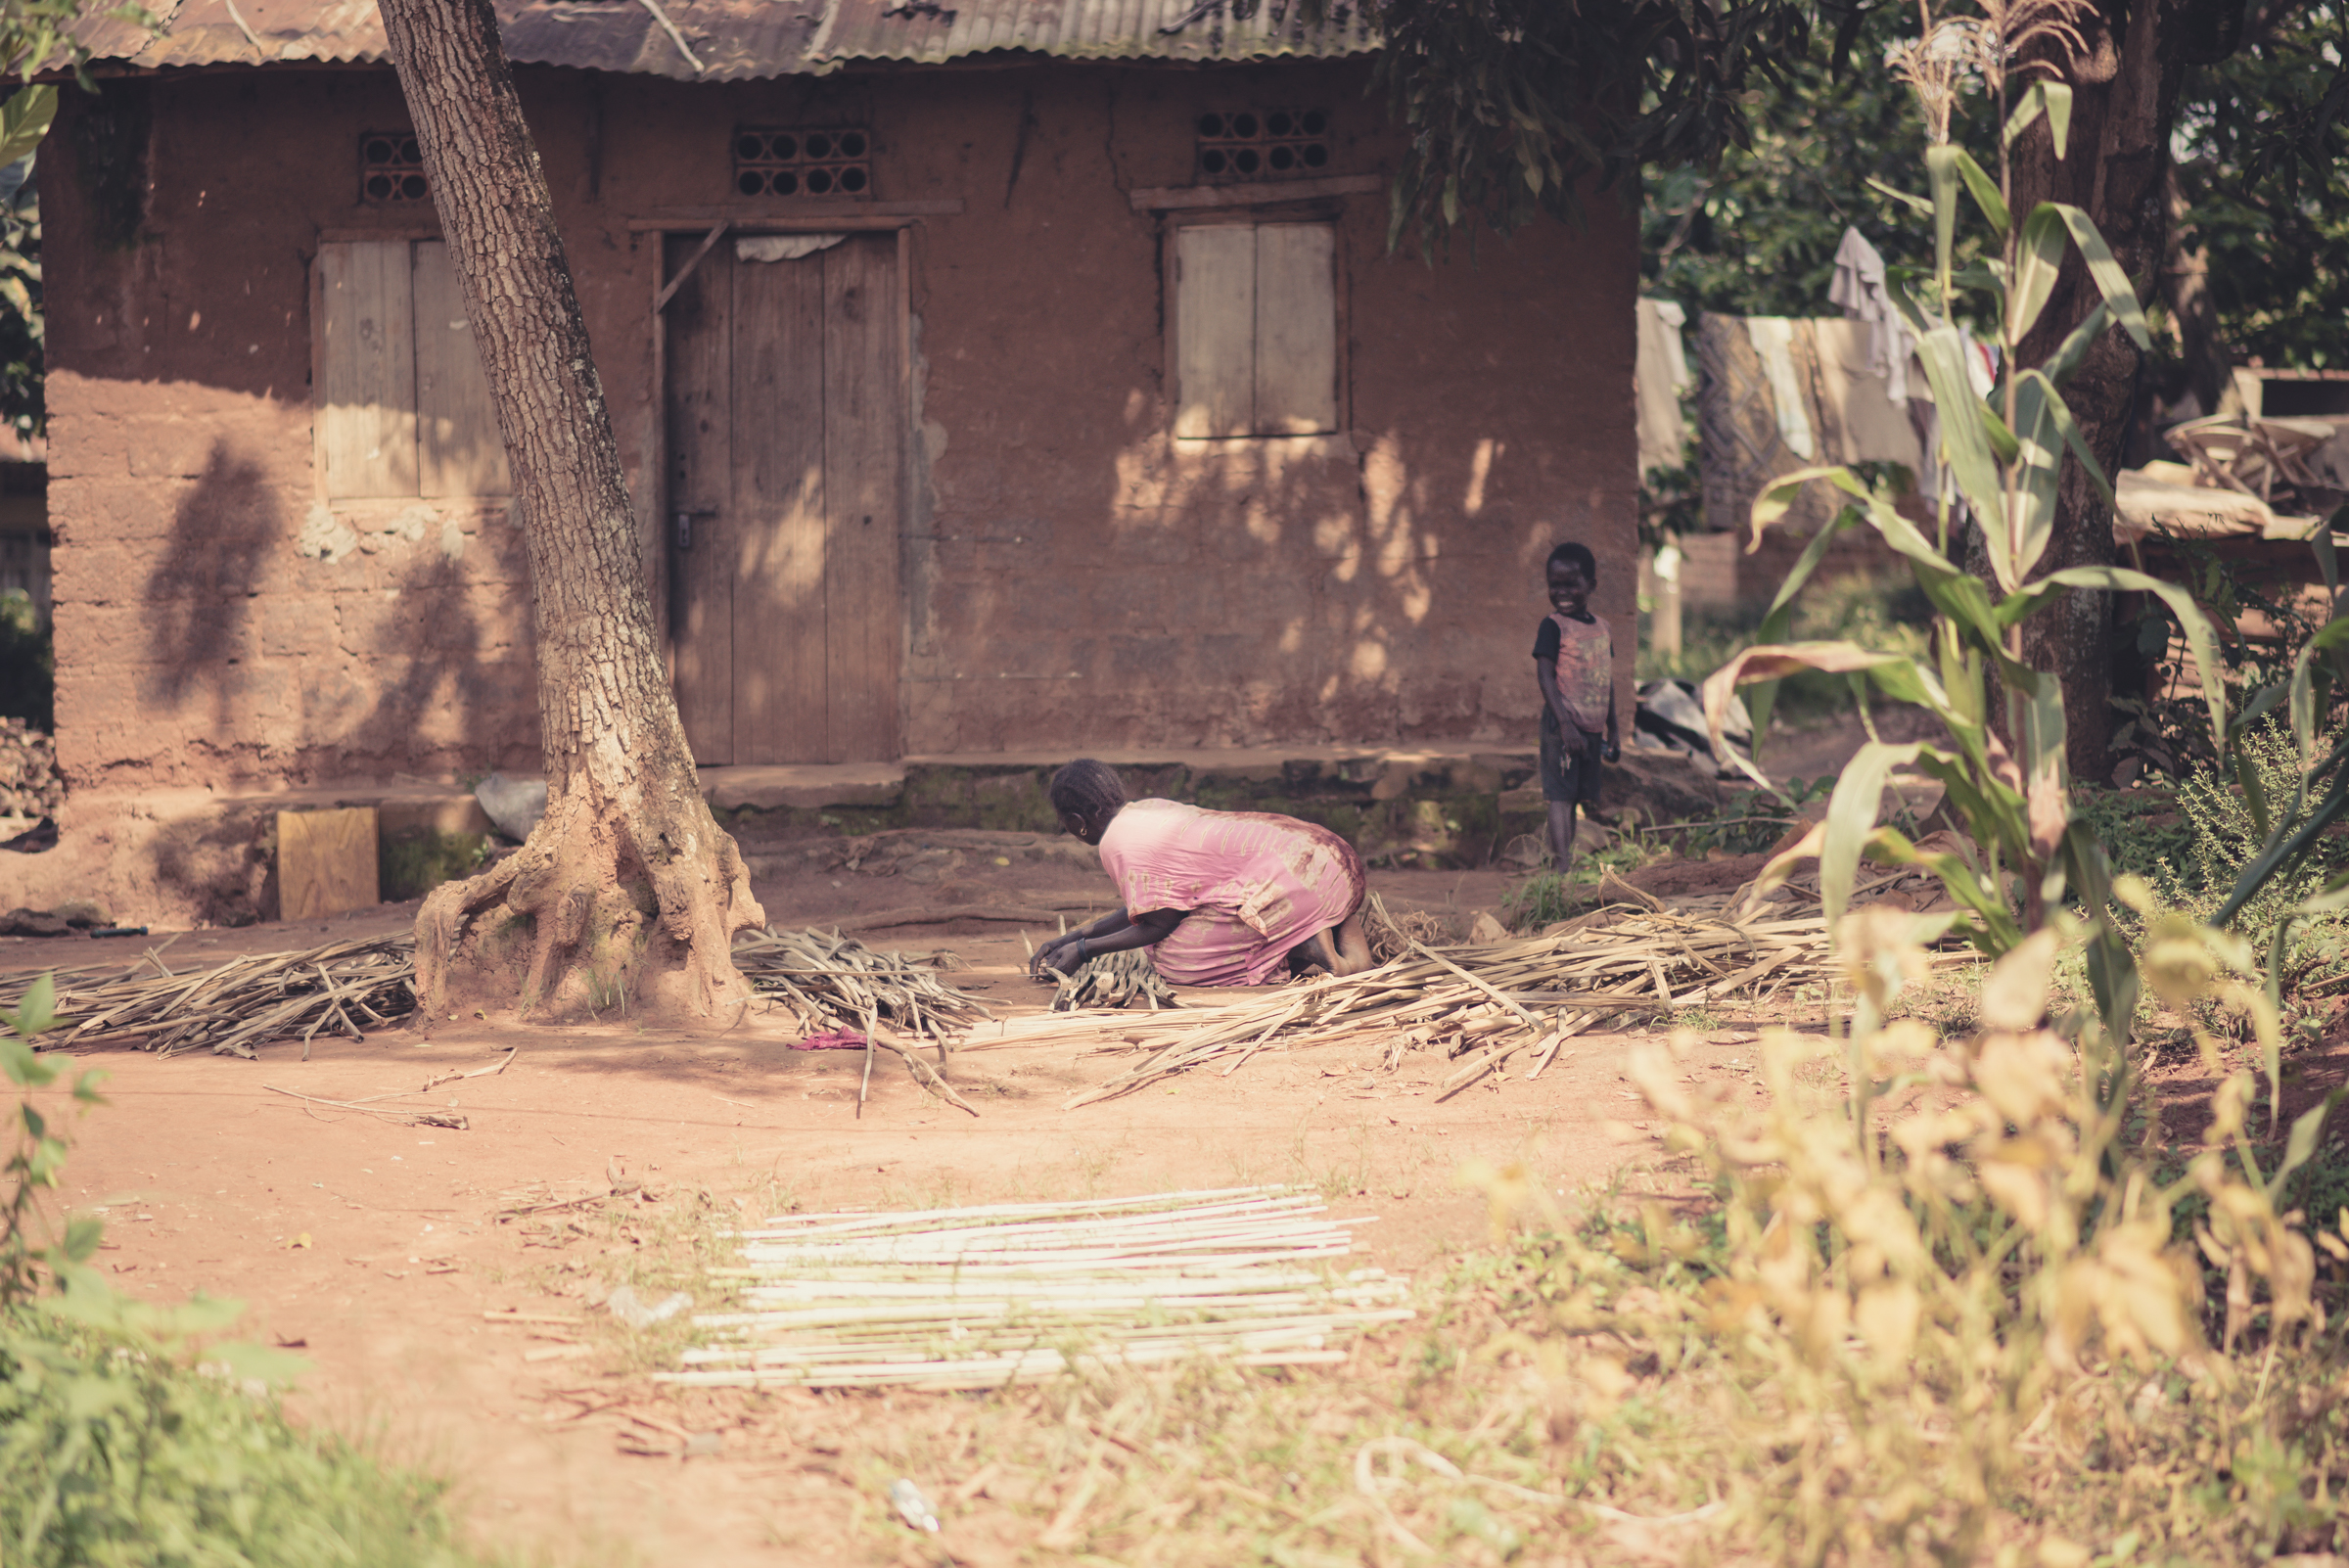 Sight is something that needs to be developed, especially when we are faced with scenes that are disturbing. The mother and child in this photo are nearly invisible — overshadowed by their environment. Seeing with the eyes of God is something we develop by opening our eyes, straining to see those who blend in with their surroundings, and once we see, we do something about it.